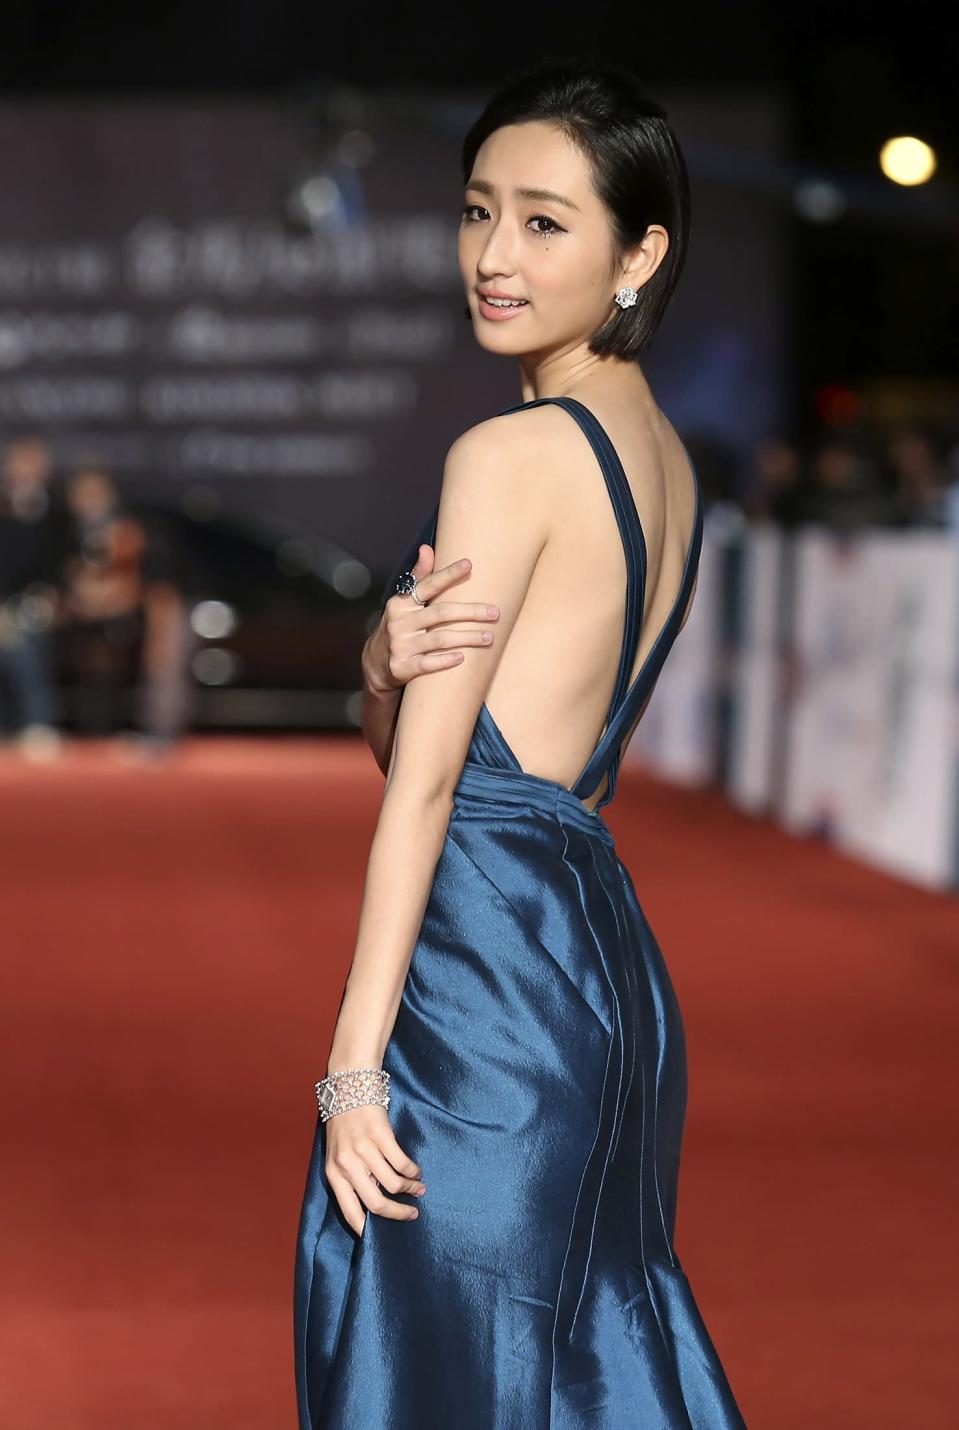 Taiwanese actress Alice Ko poses for photographers on the red carpet at the 50th Golden Horse Film Awards in Taipei November 23, 2013. REUTERS/Patrick Lin (TAIWAN - Tags: ENTERTAINMENT)